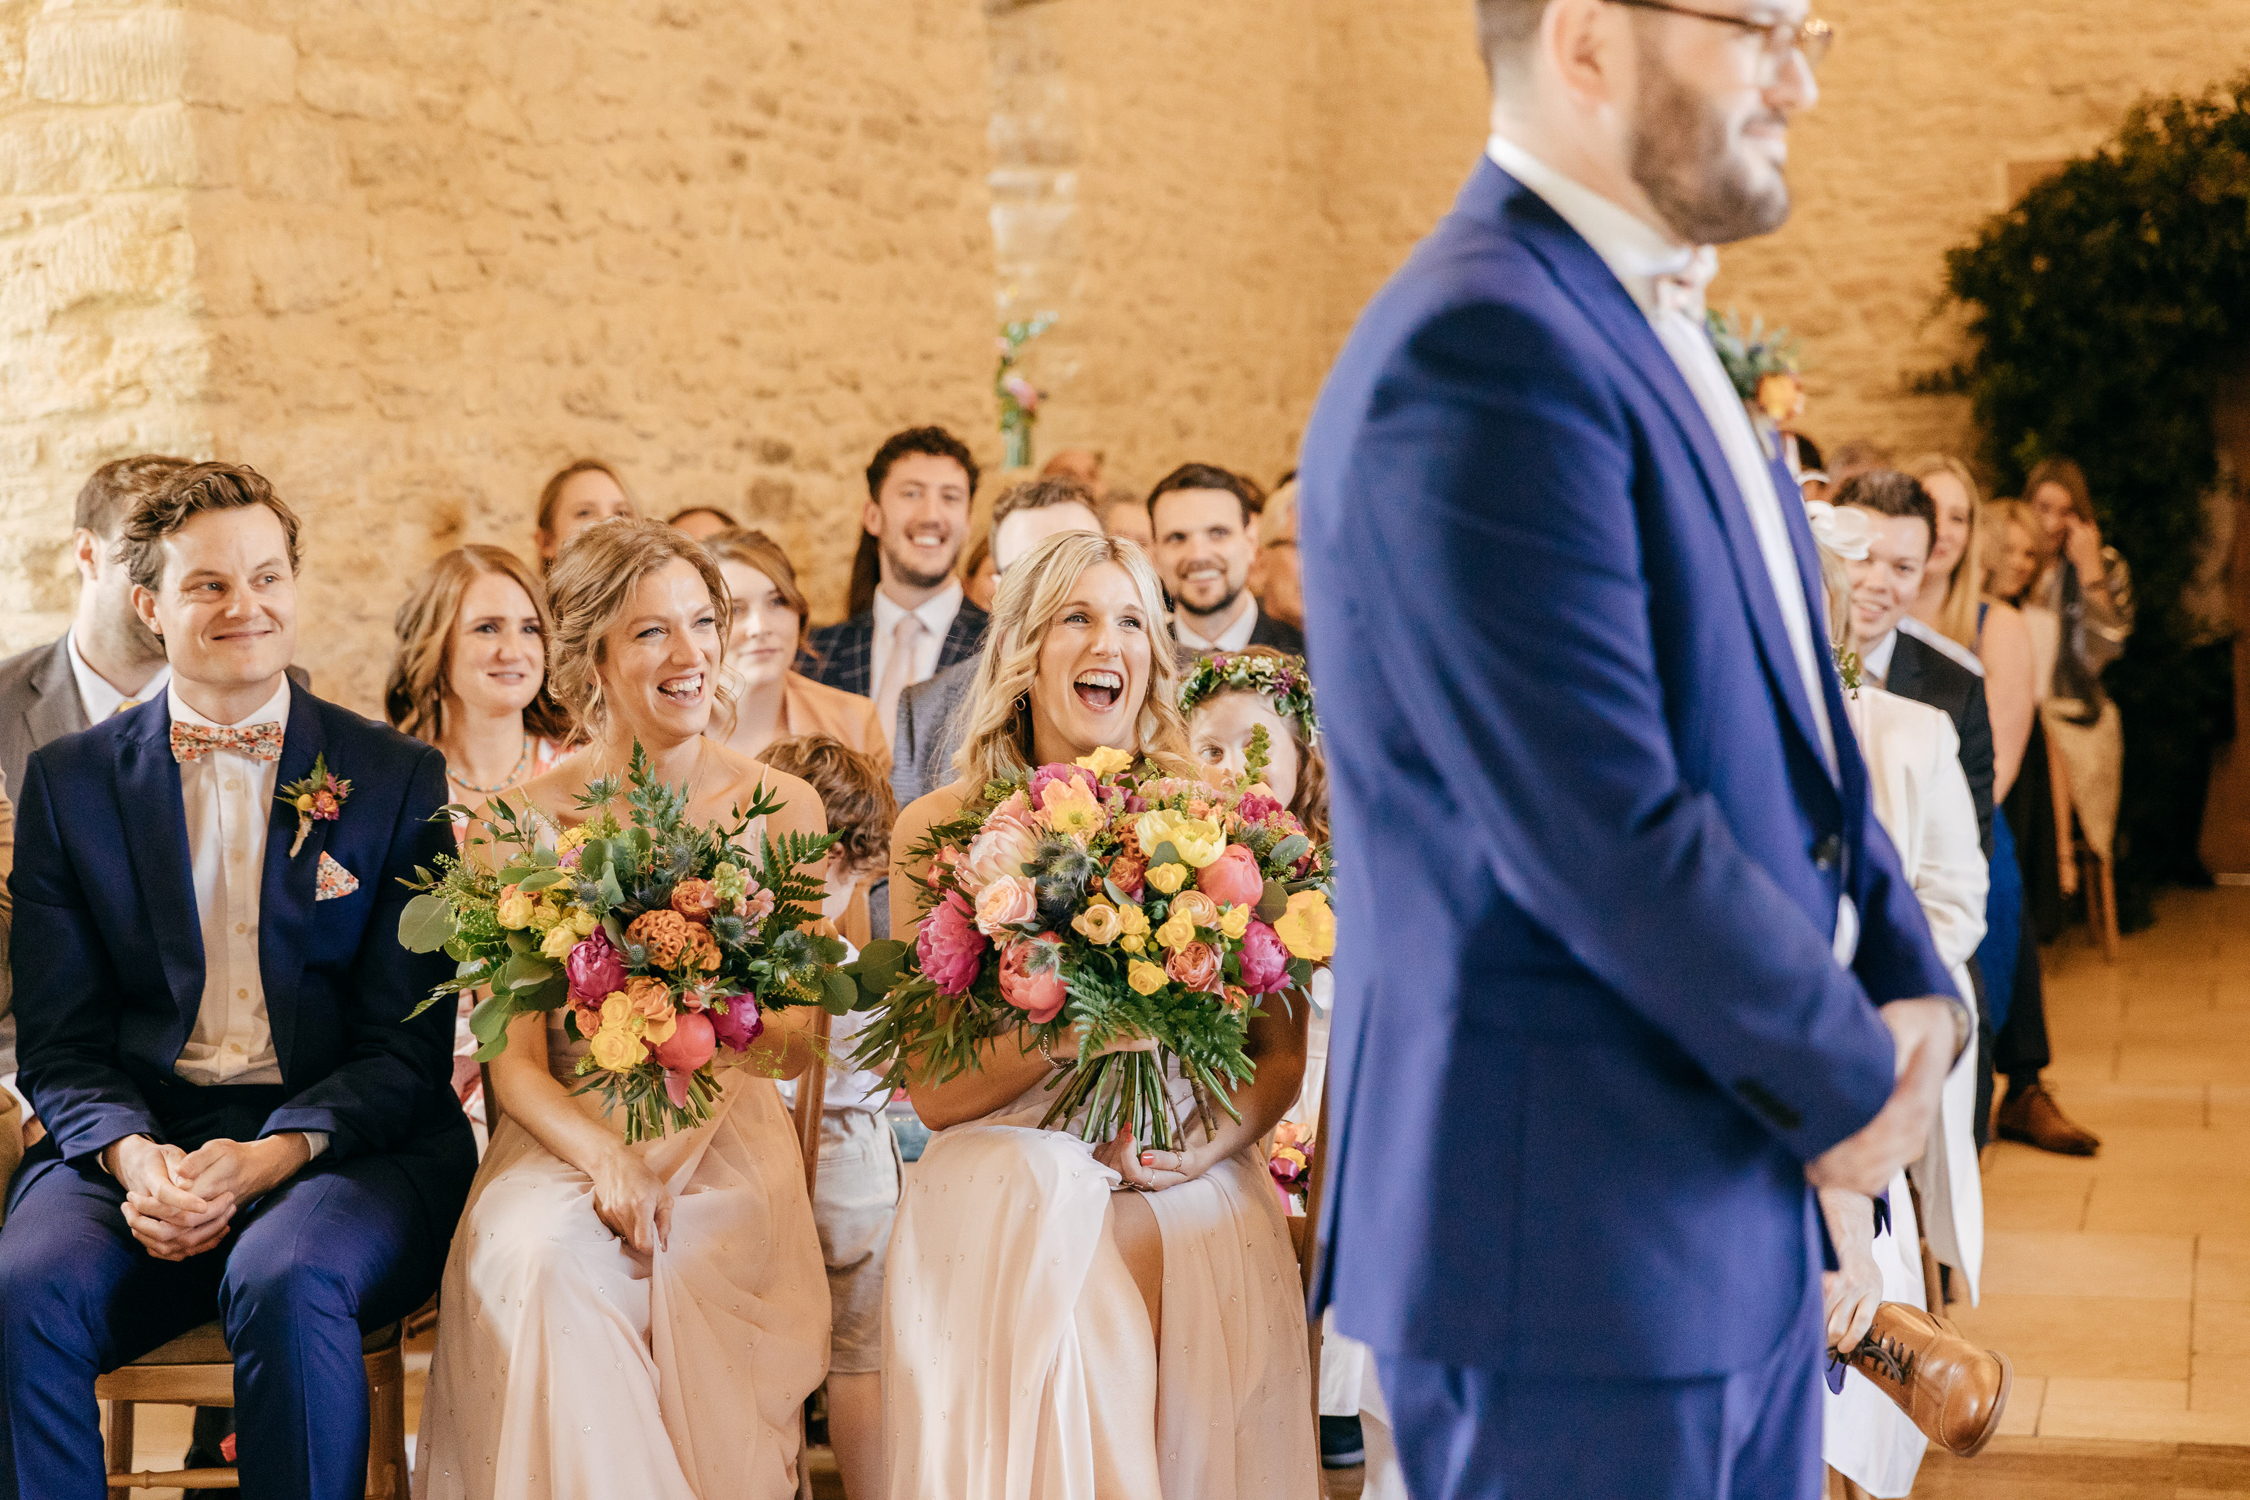 natural wedding photo of guests at kingscote barn and their joyful reaction to couple being officially married